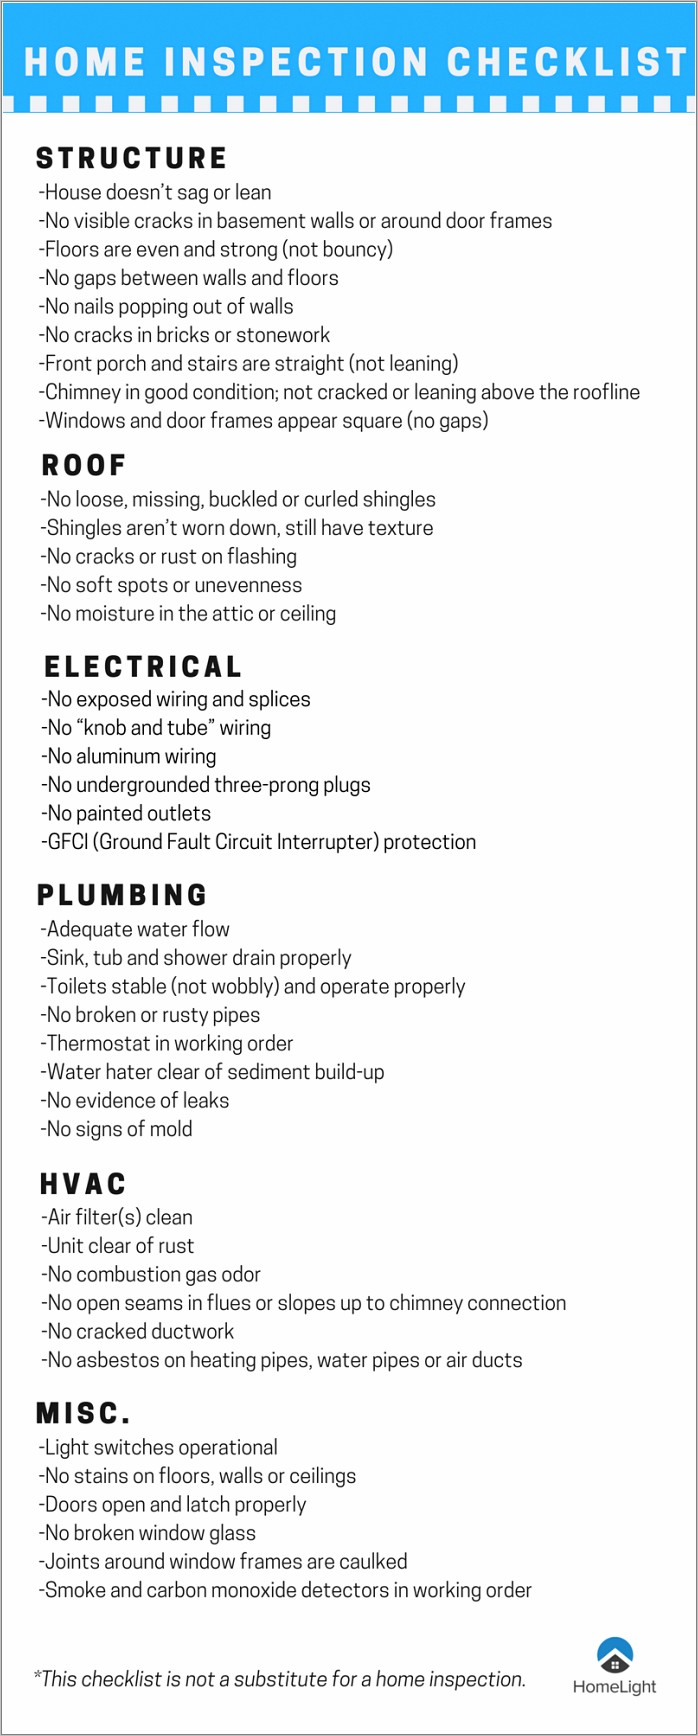 Home Inspection Checklist Form